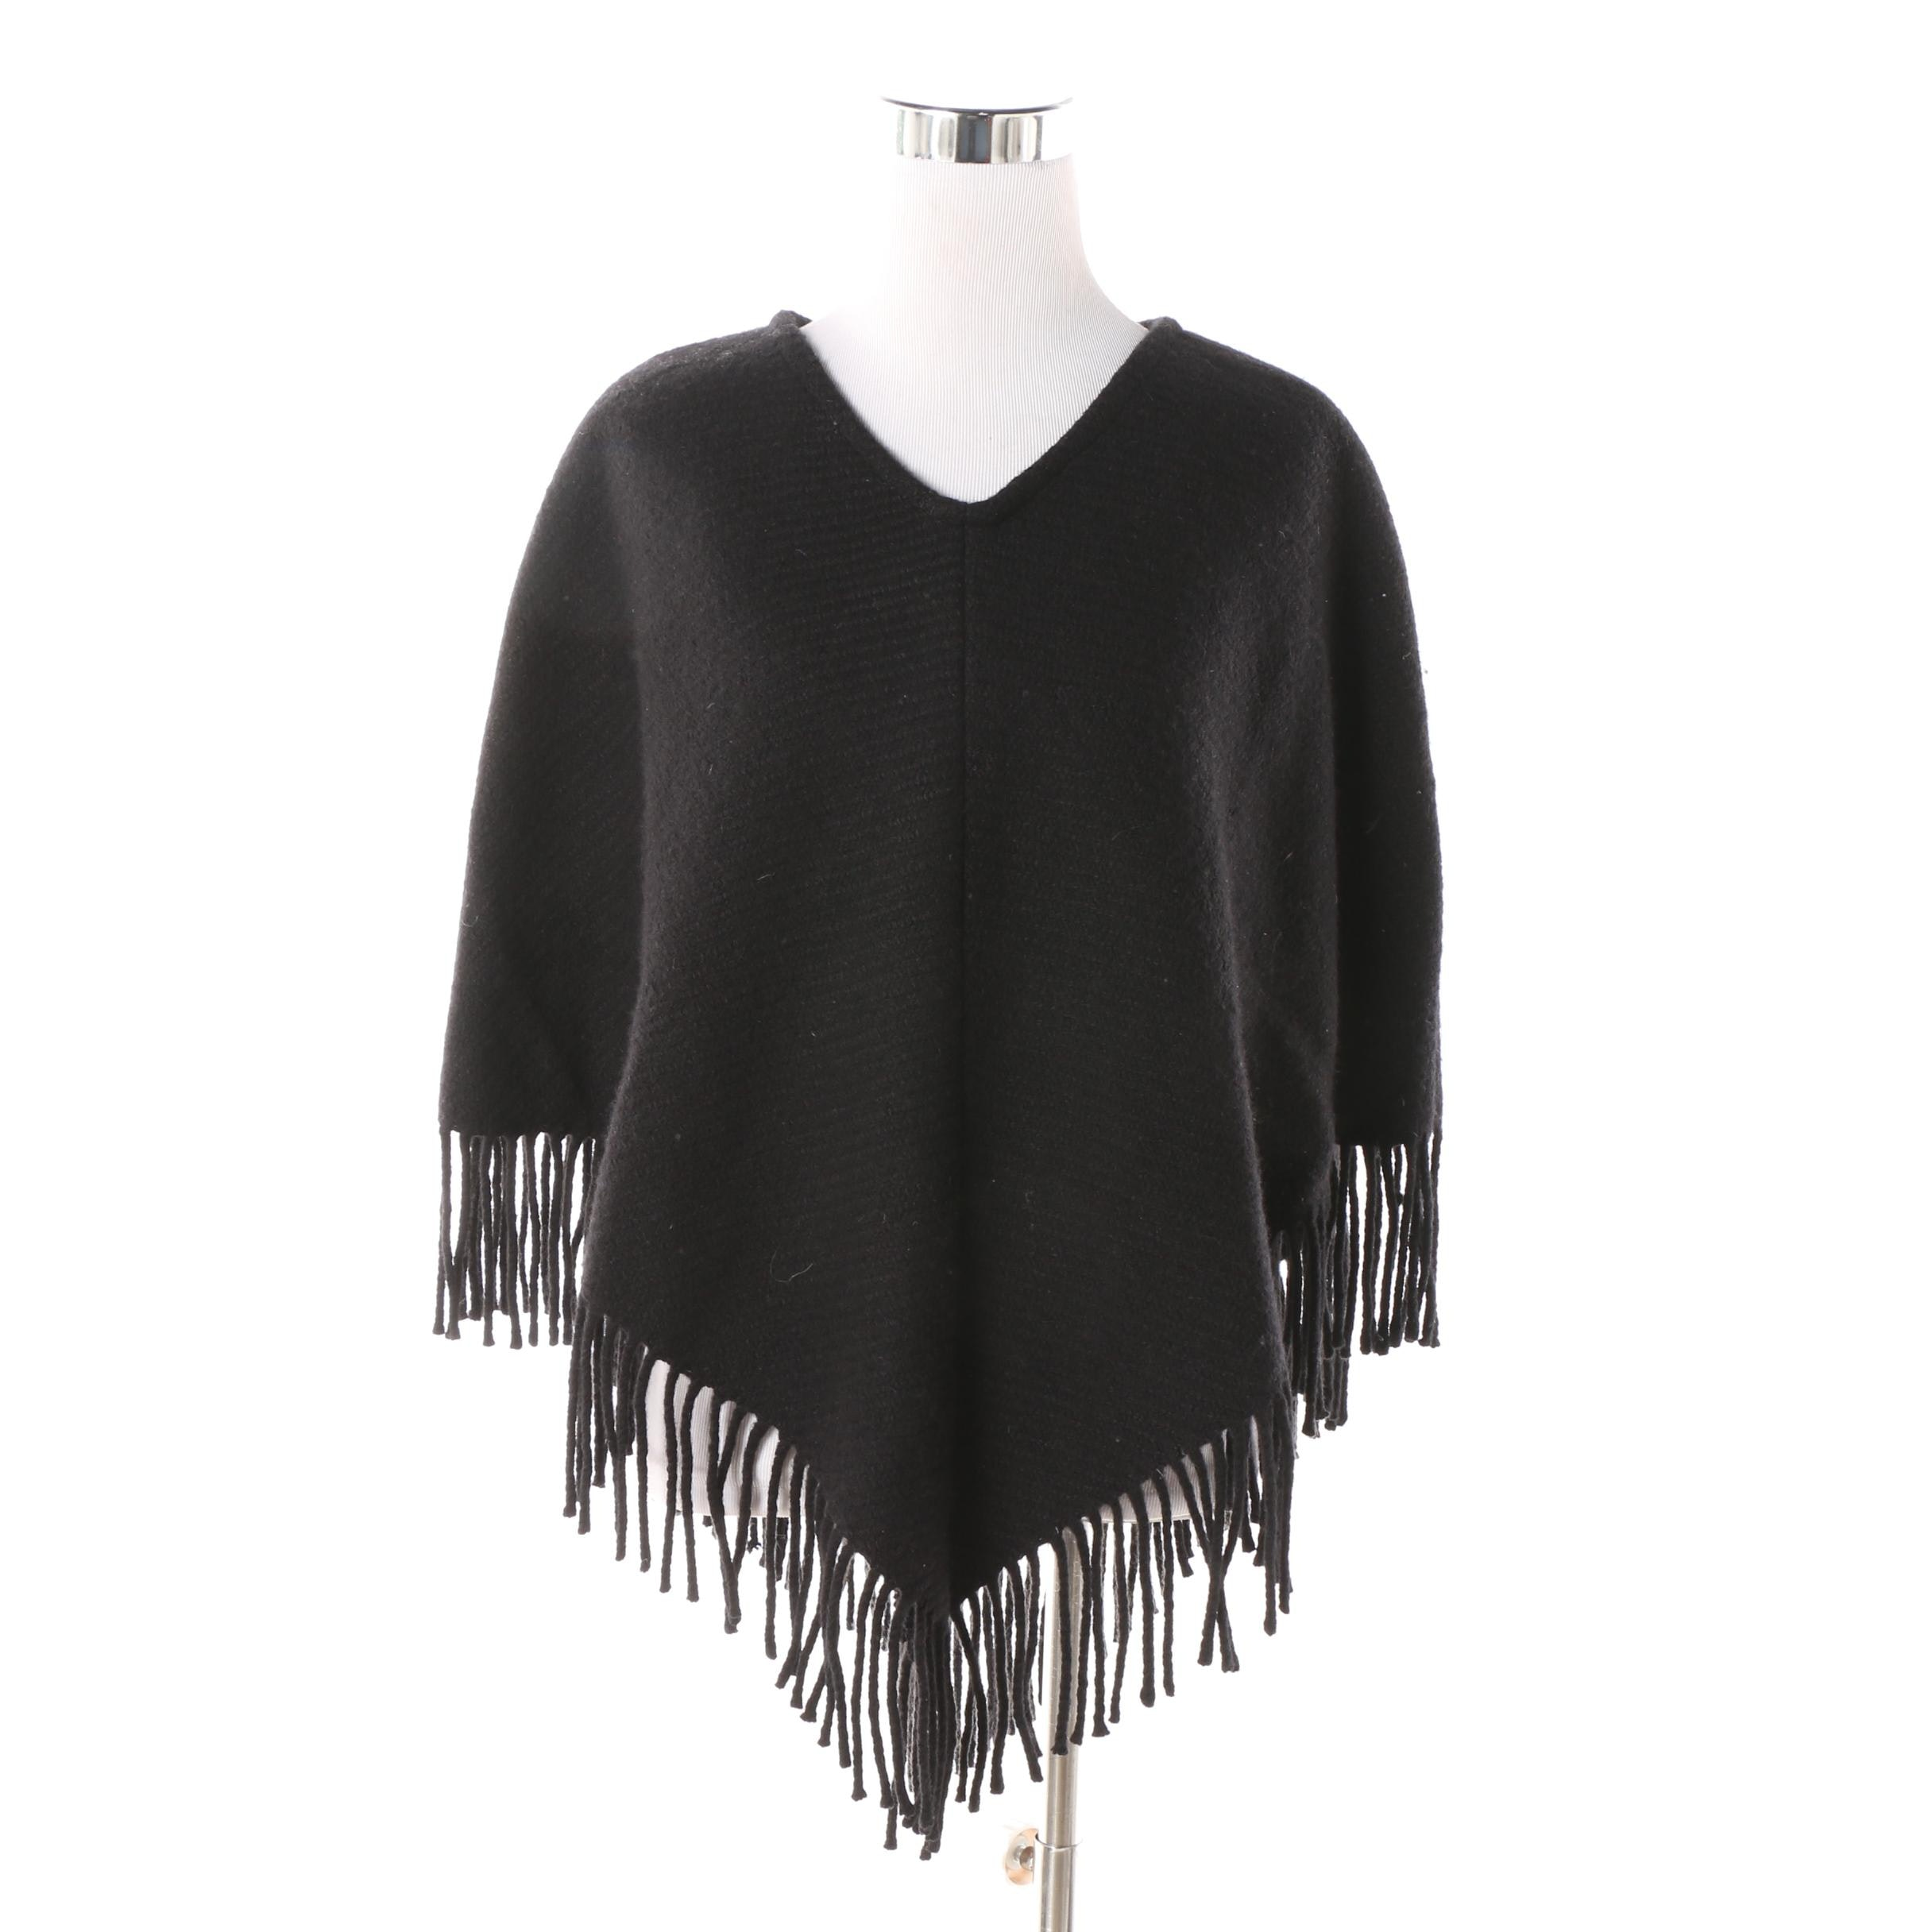 Burberry Black Cashmere and Wool Blend Fringed Poncho